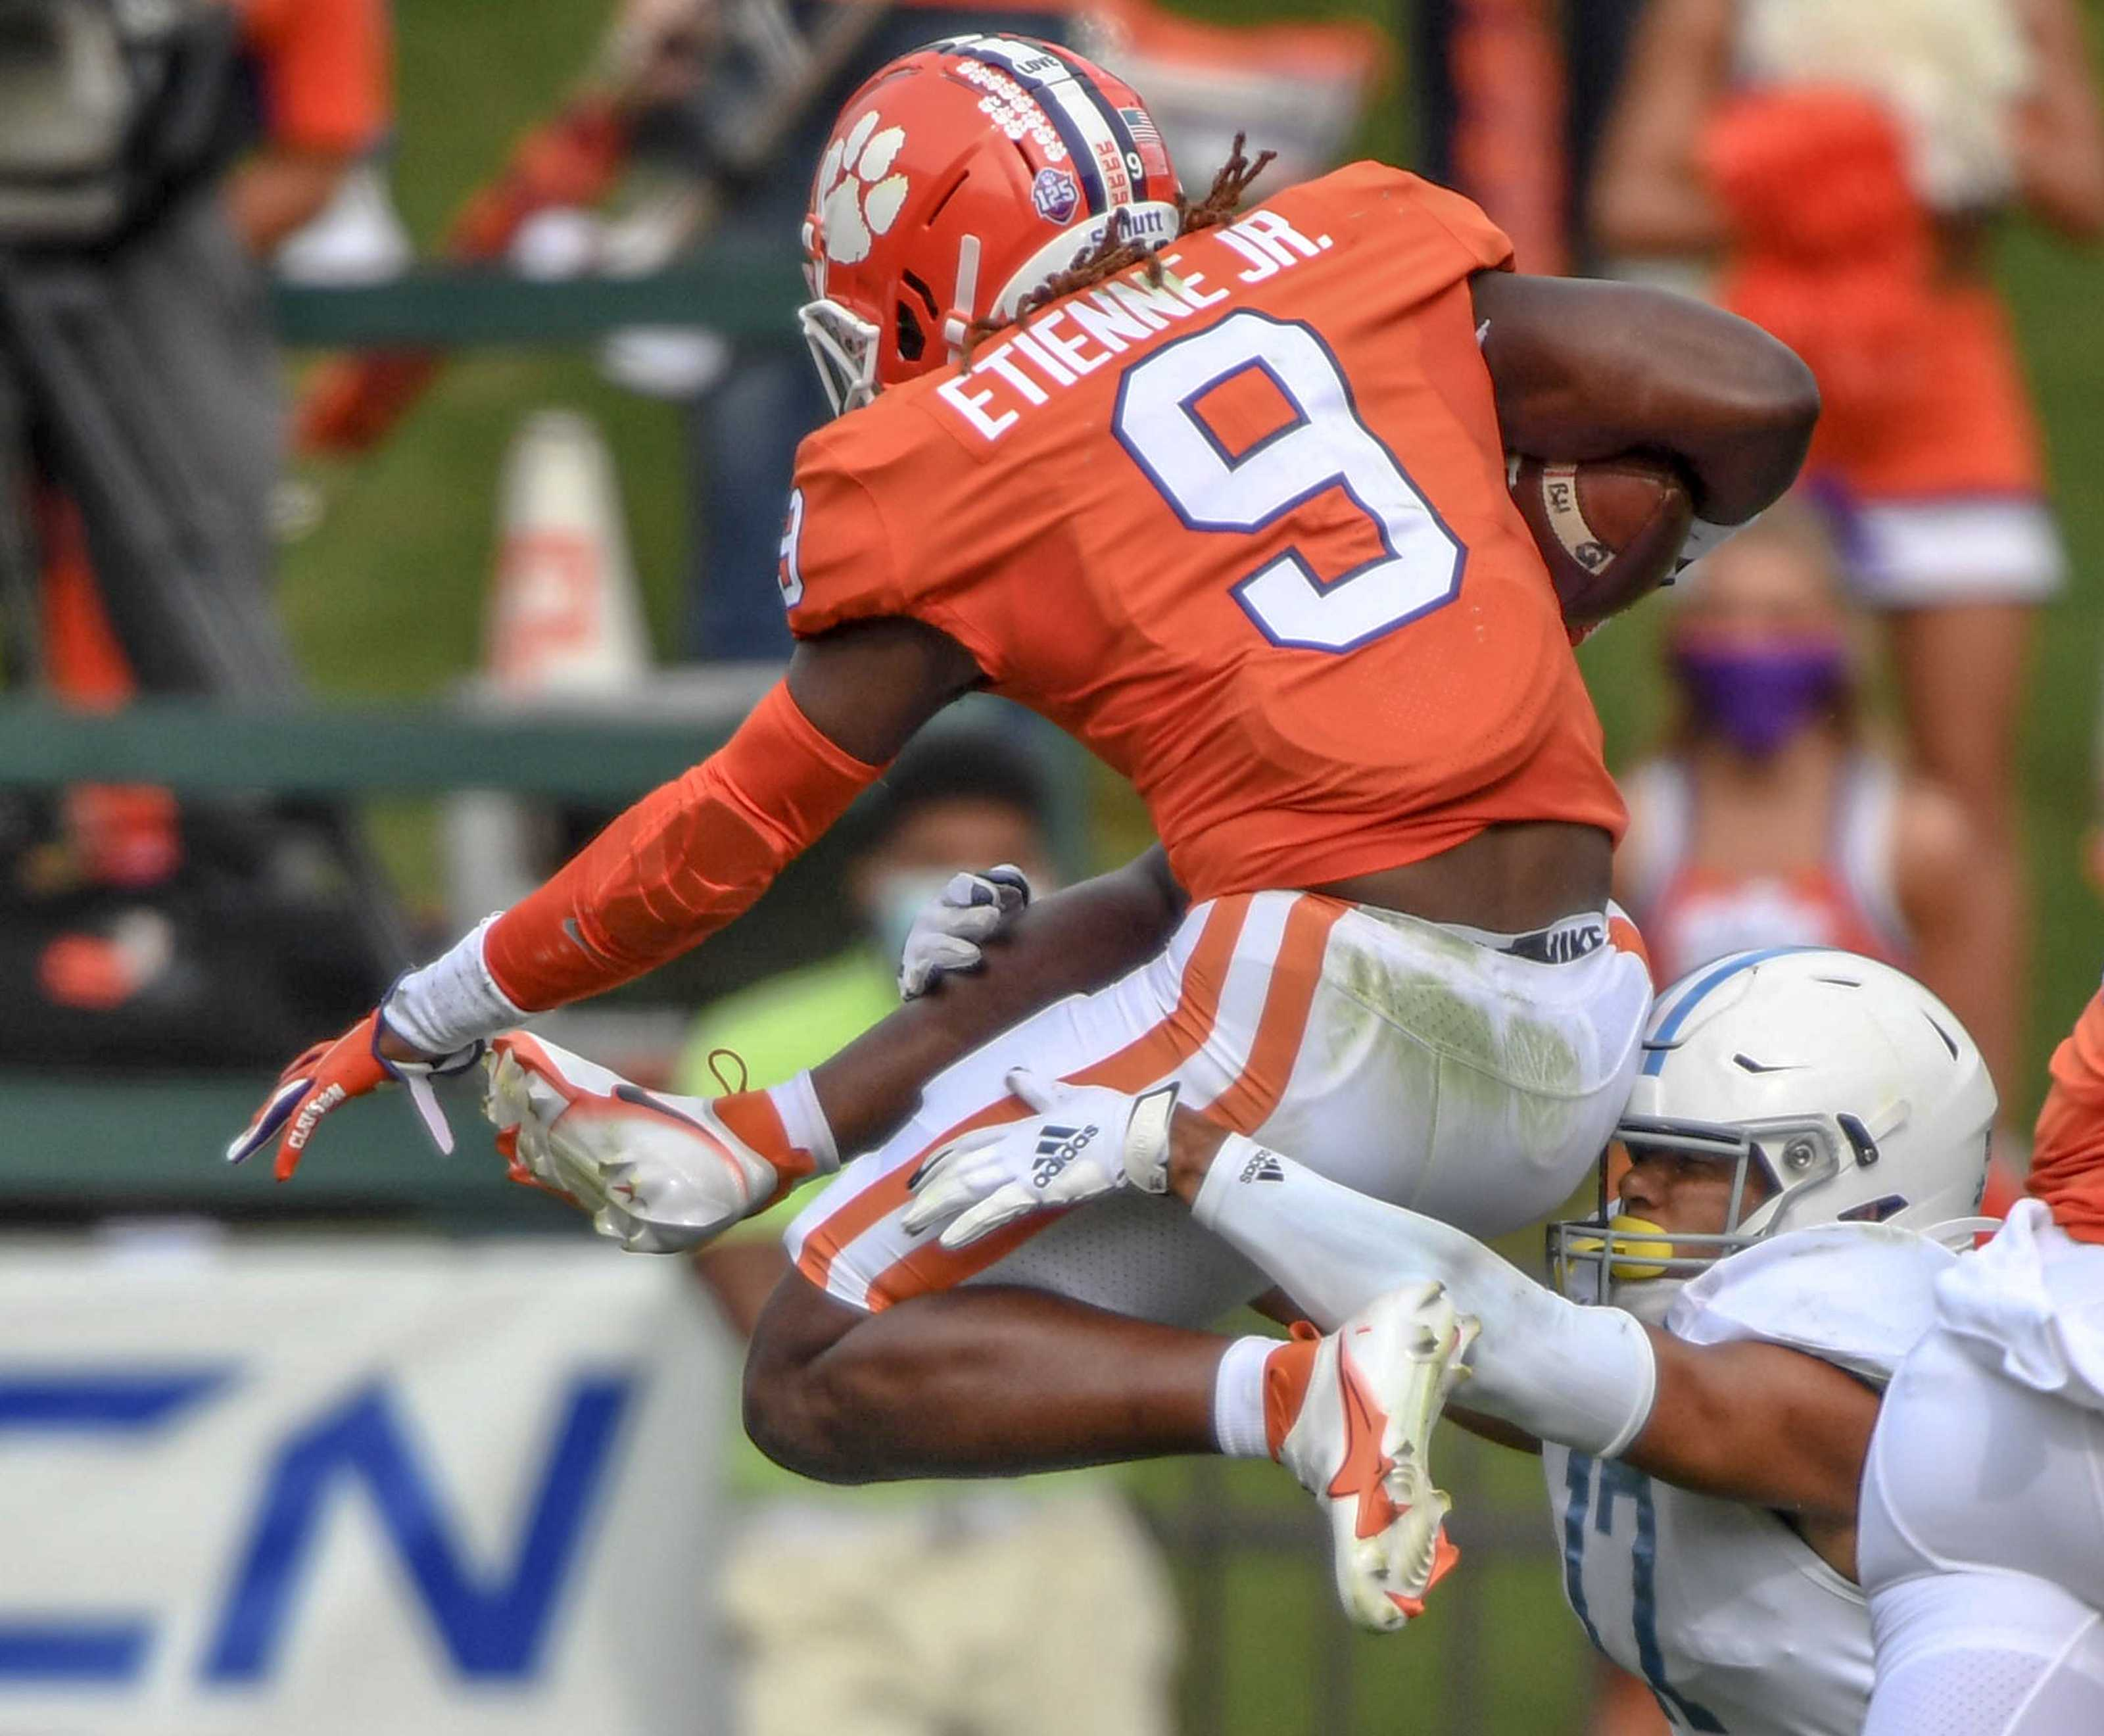 Travis Etienne, potential draft pick for the Tampa Bay Buccaneers